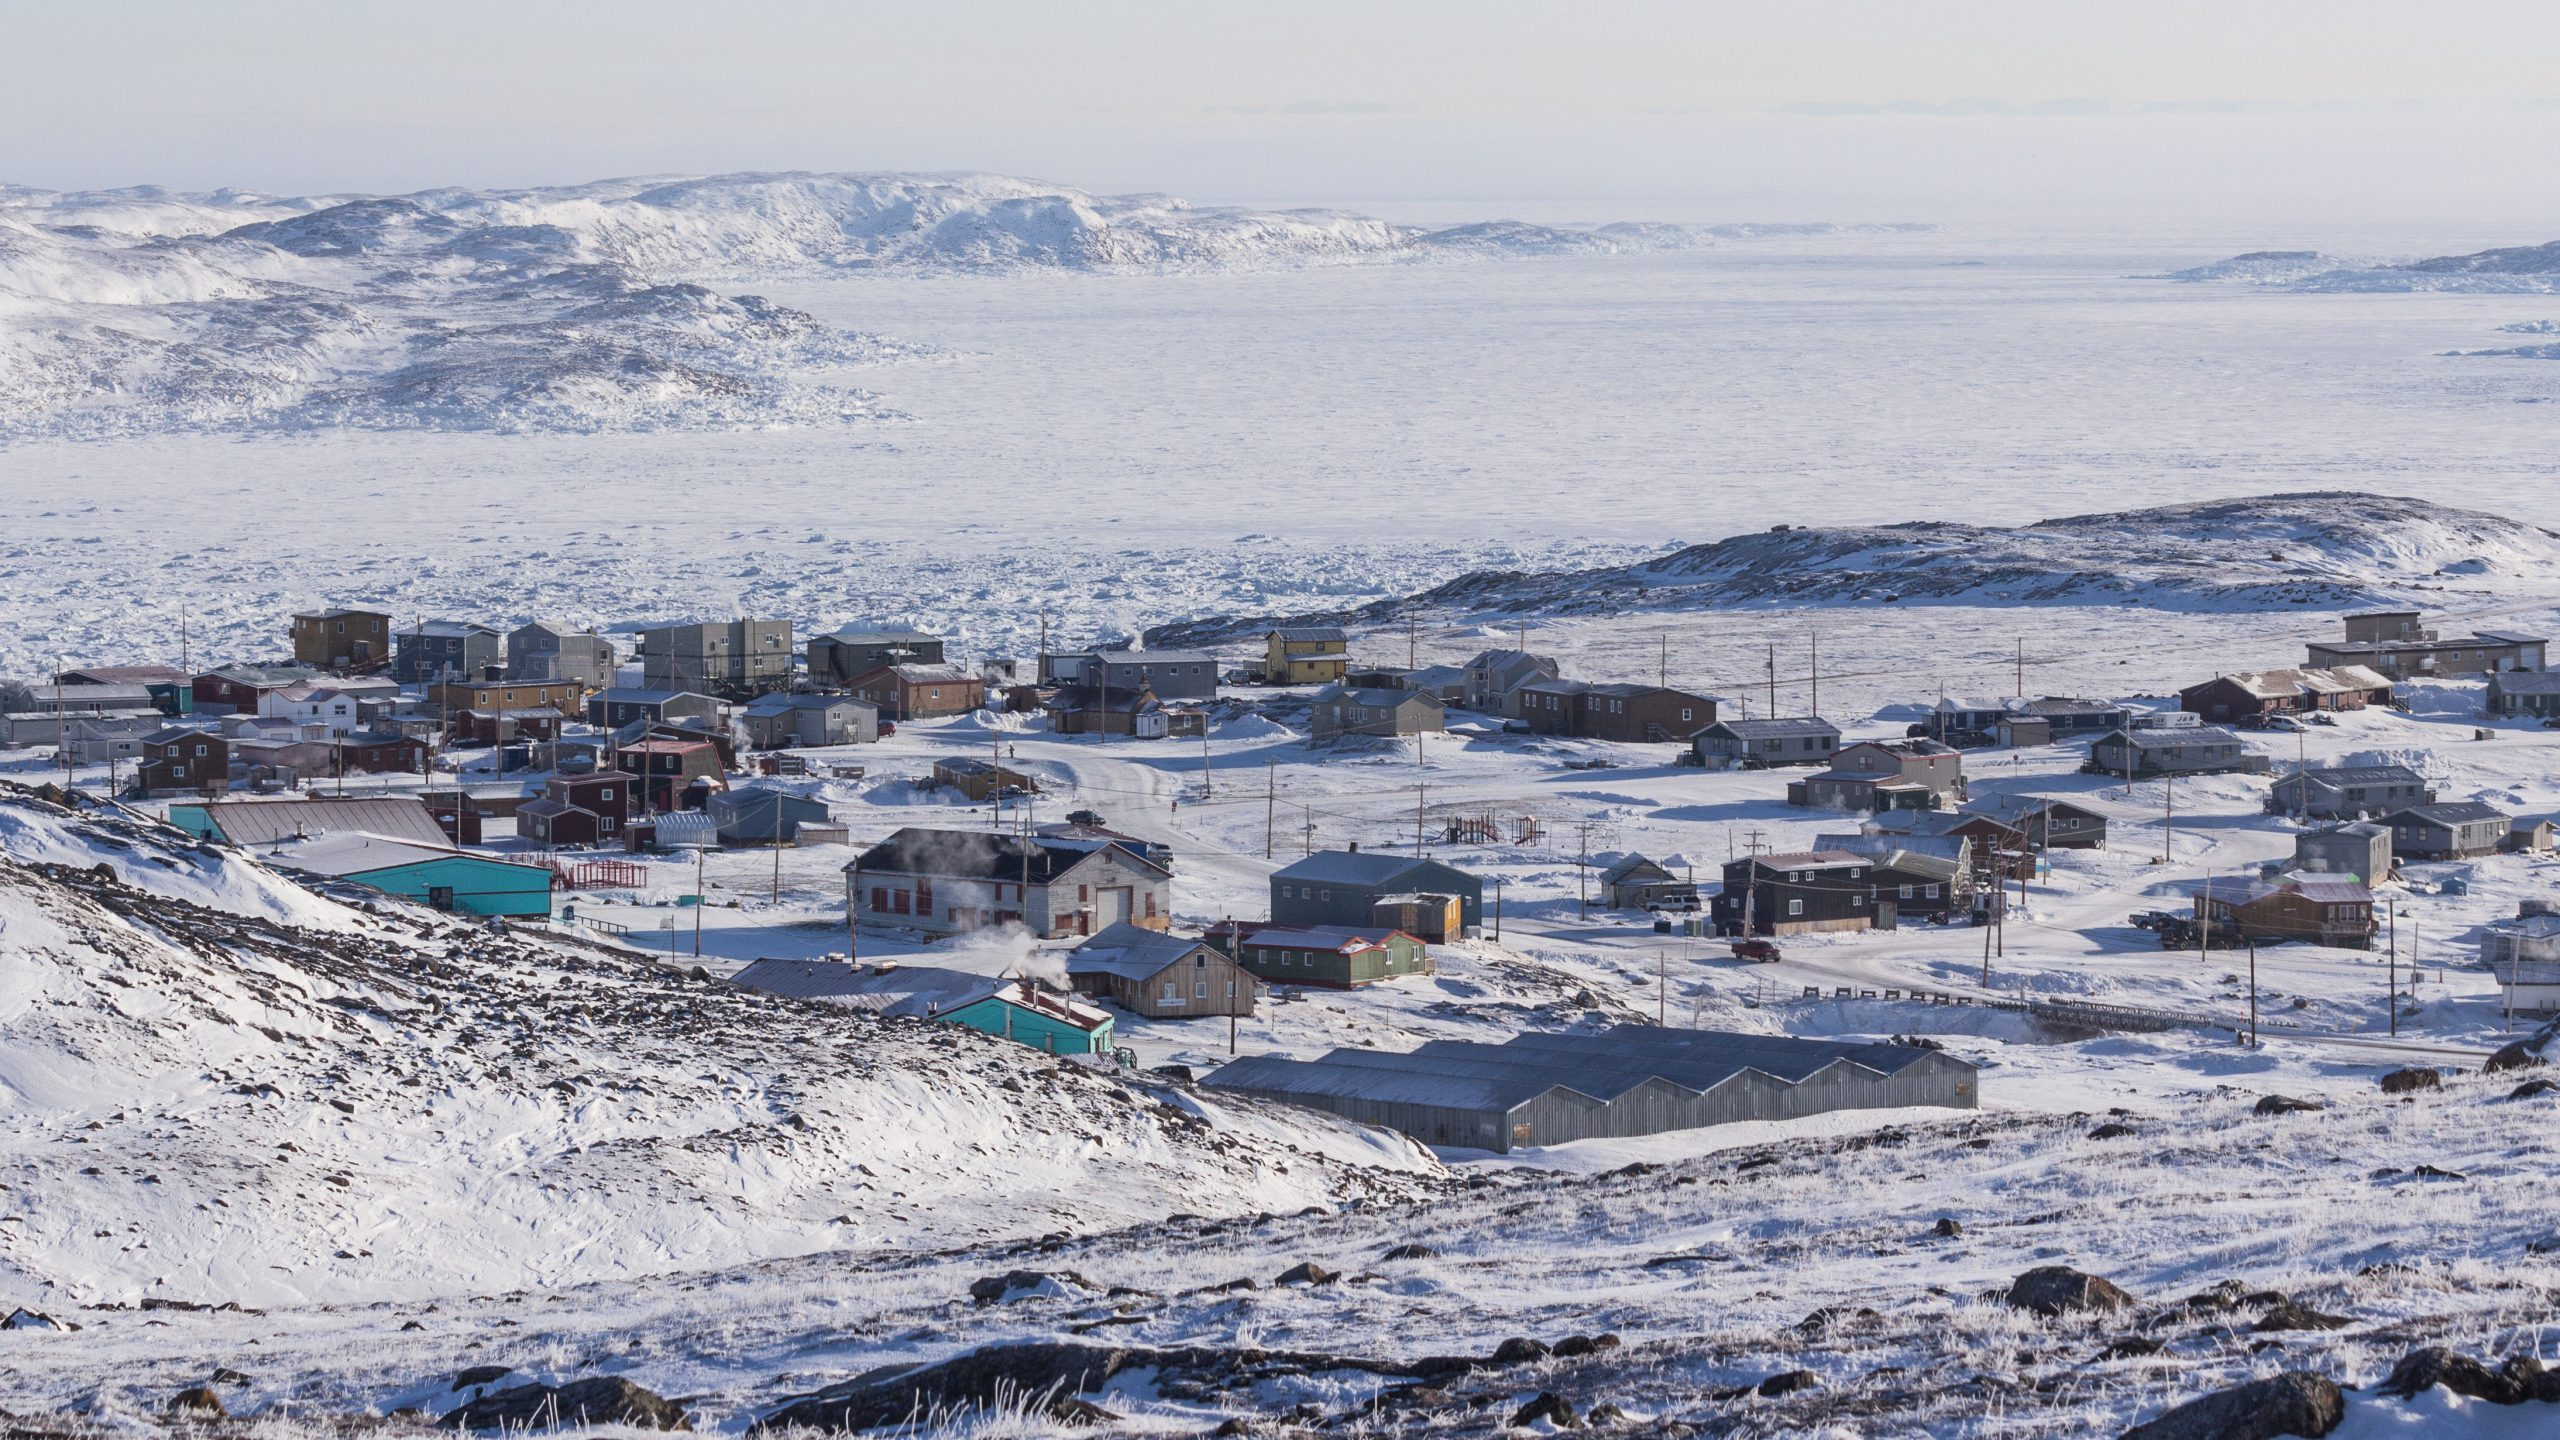 Inuit women working in mining report high levels of sexual harassment